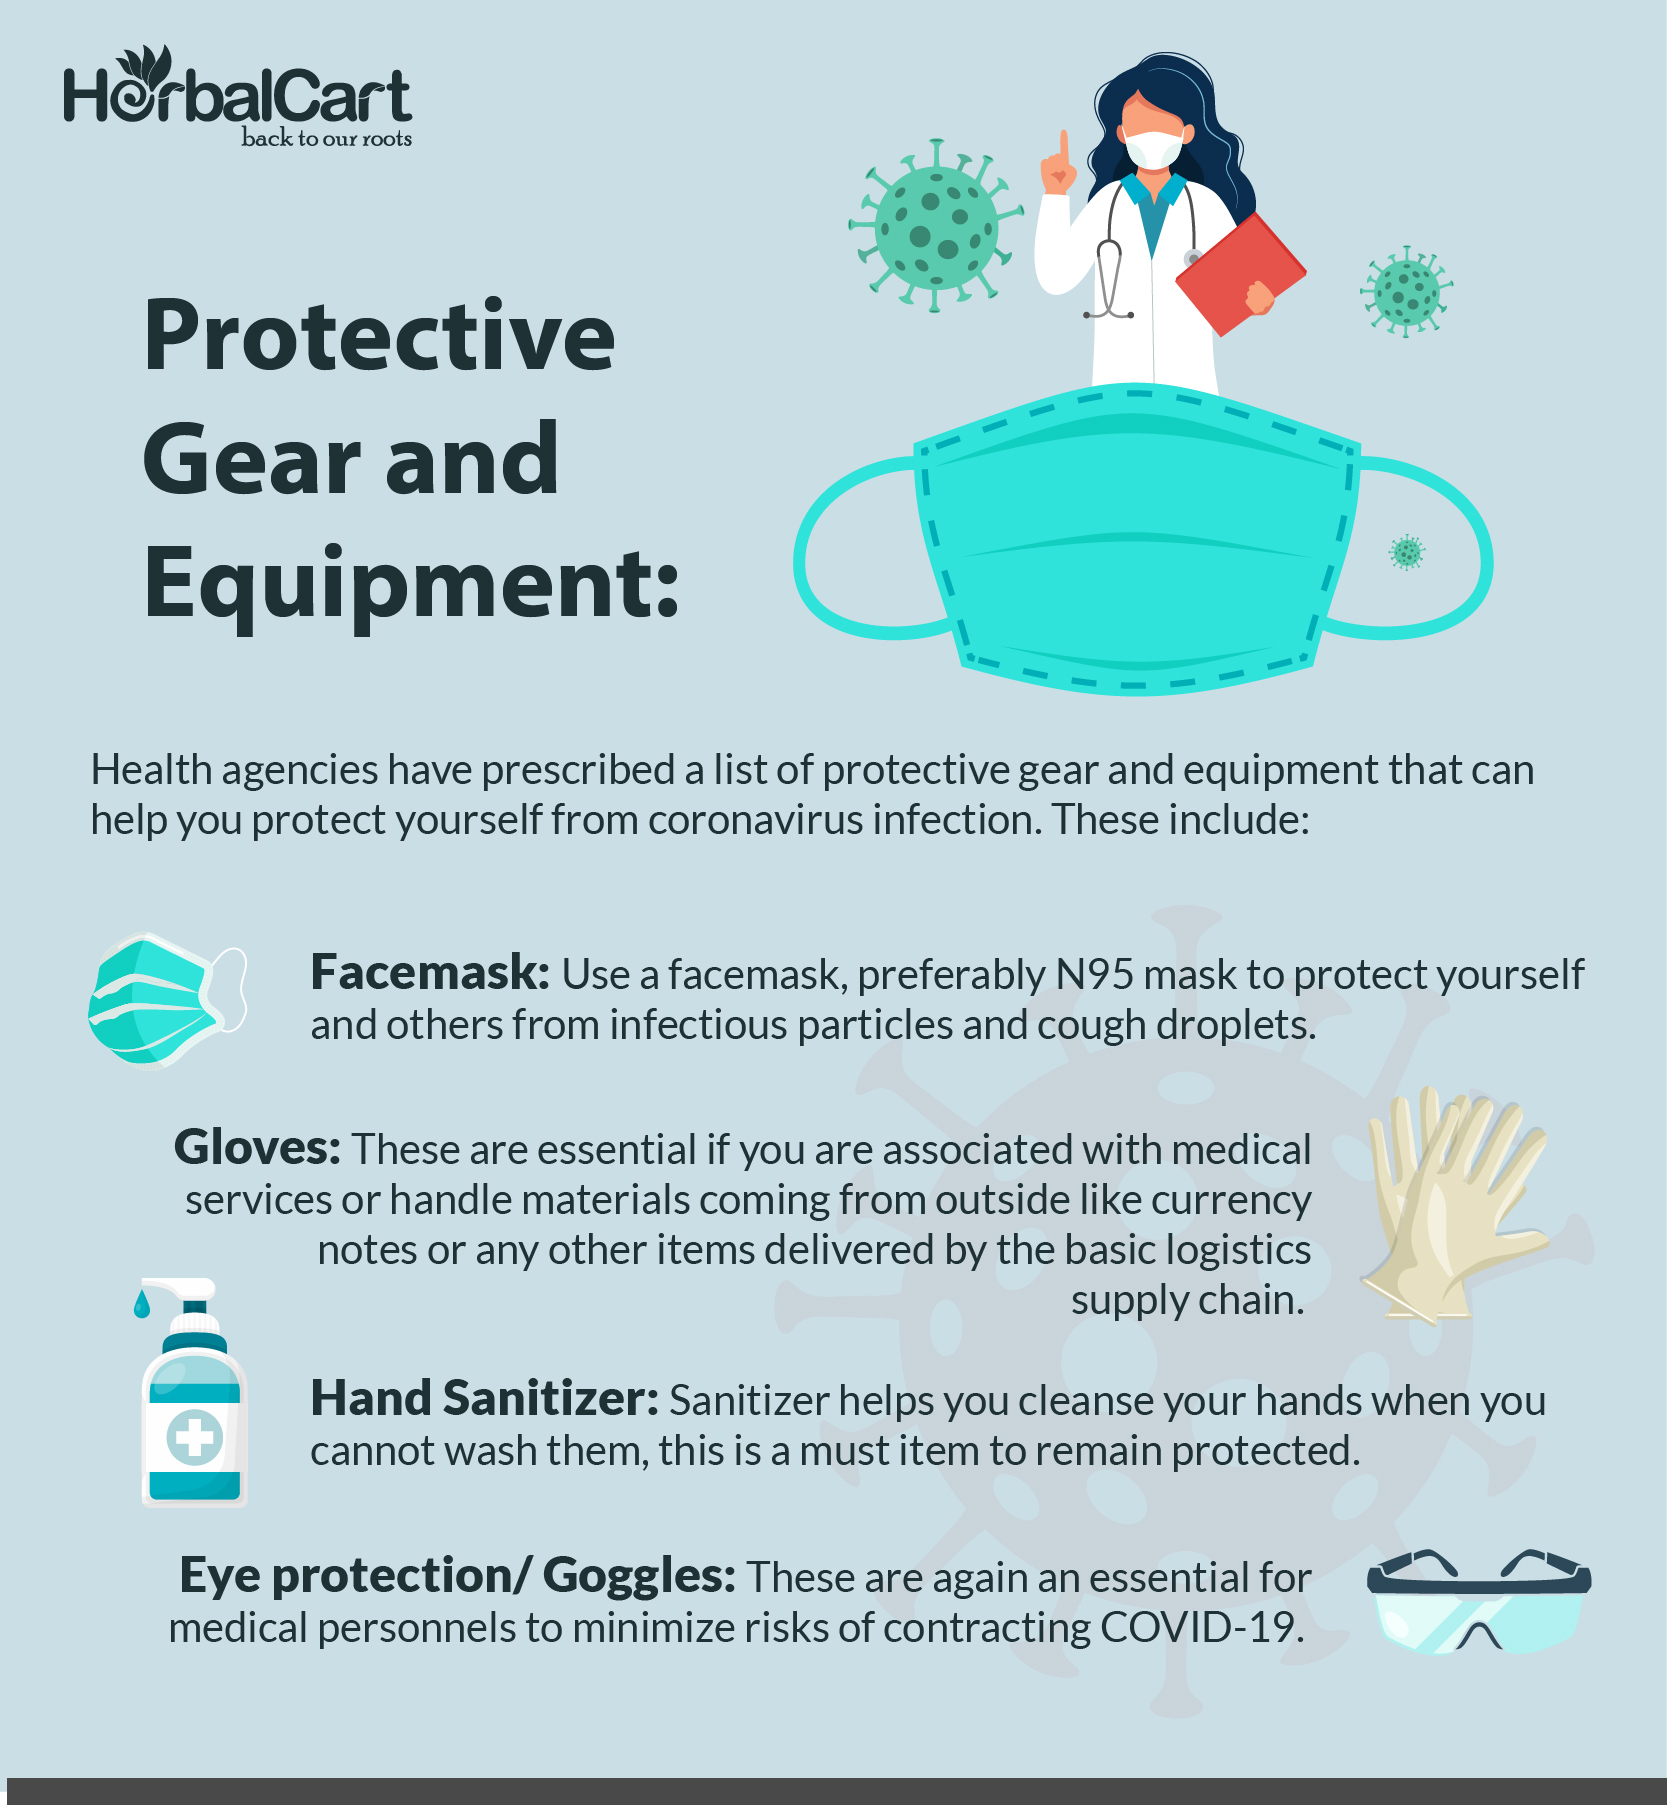 Protective Gear and Equipment